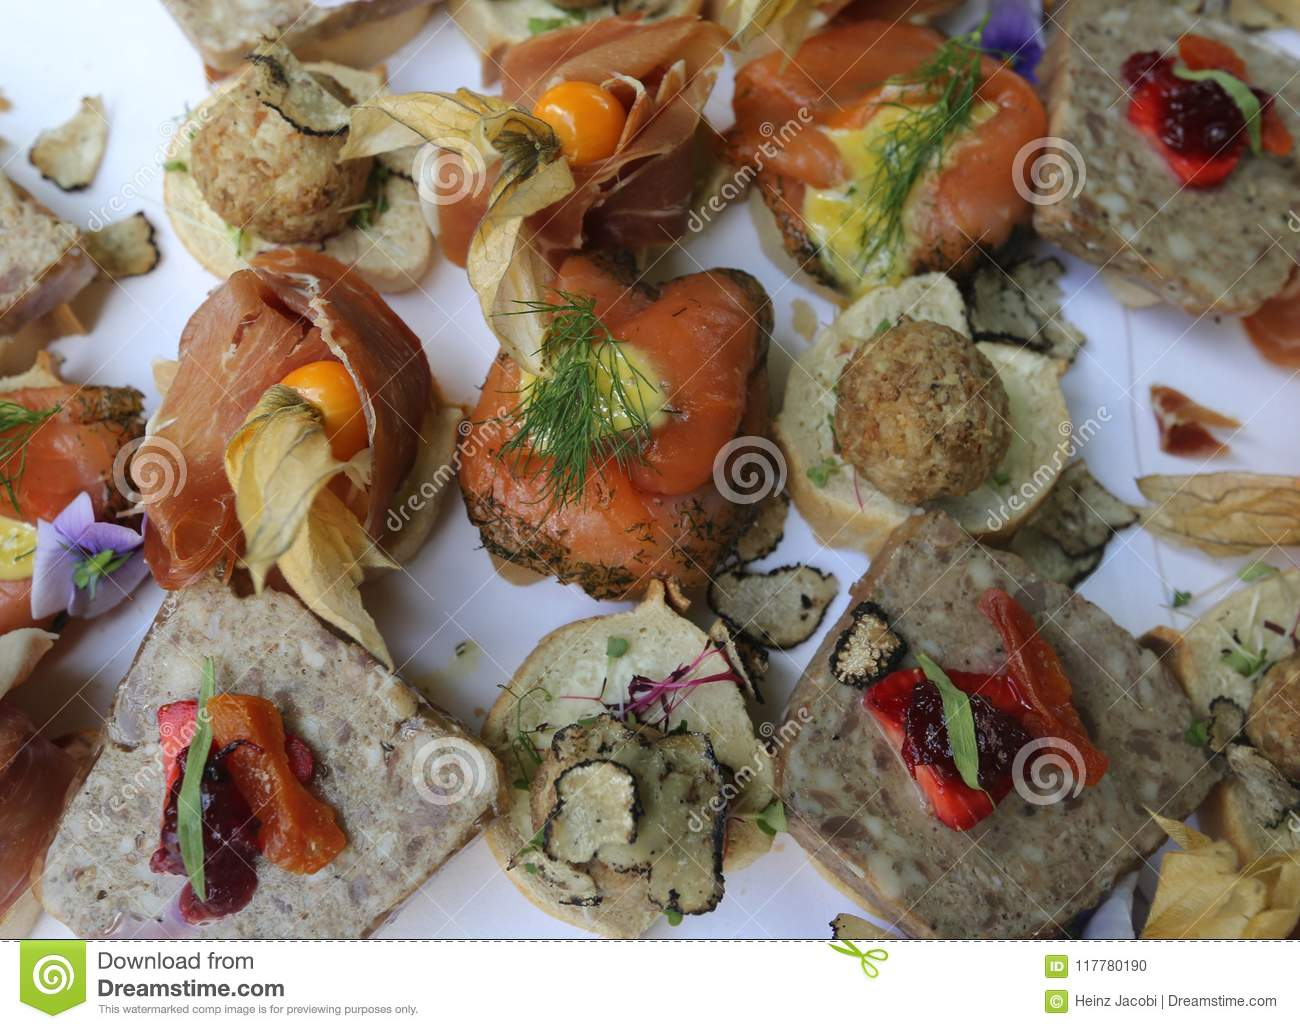 A stylish arrangement for the wedding guests with salmon, ham, pies and fruits